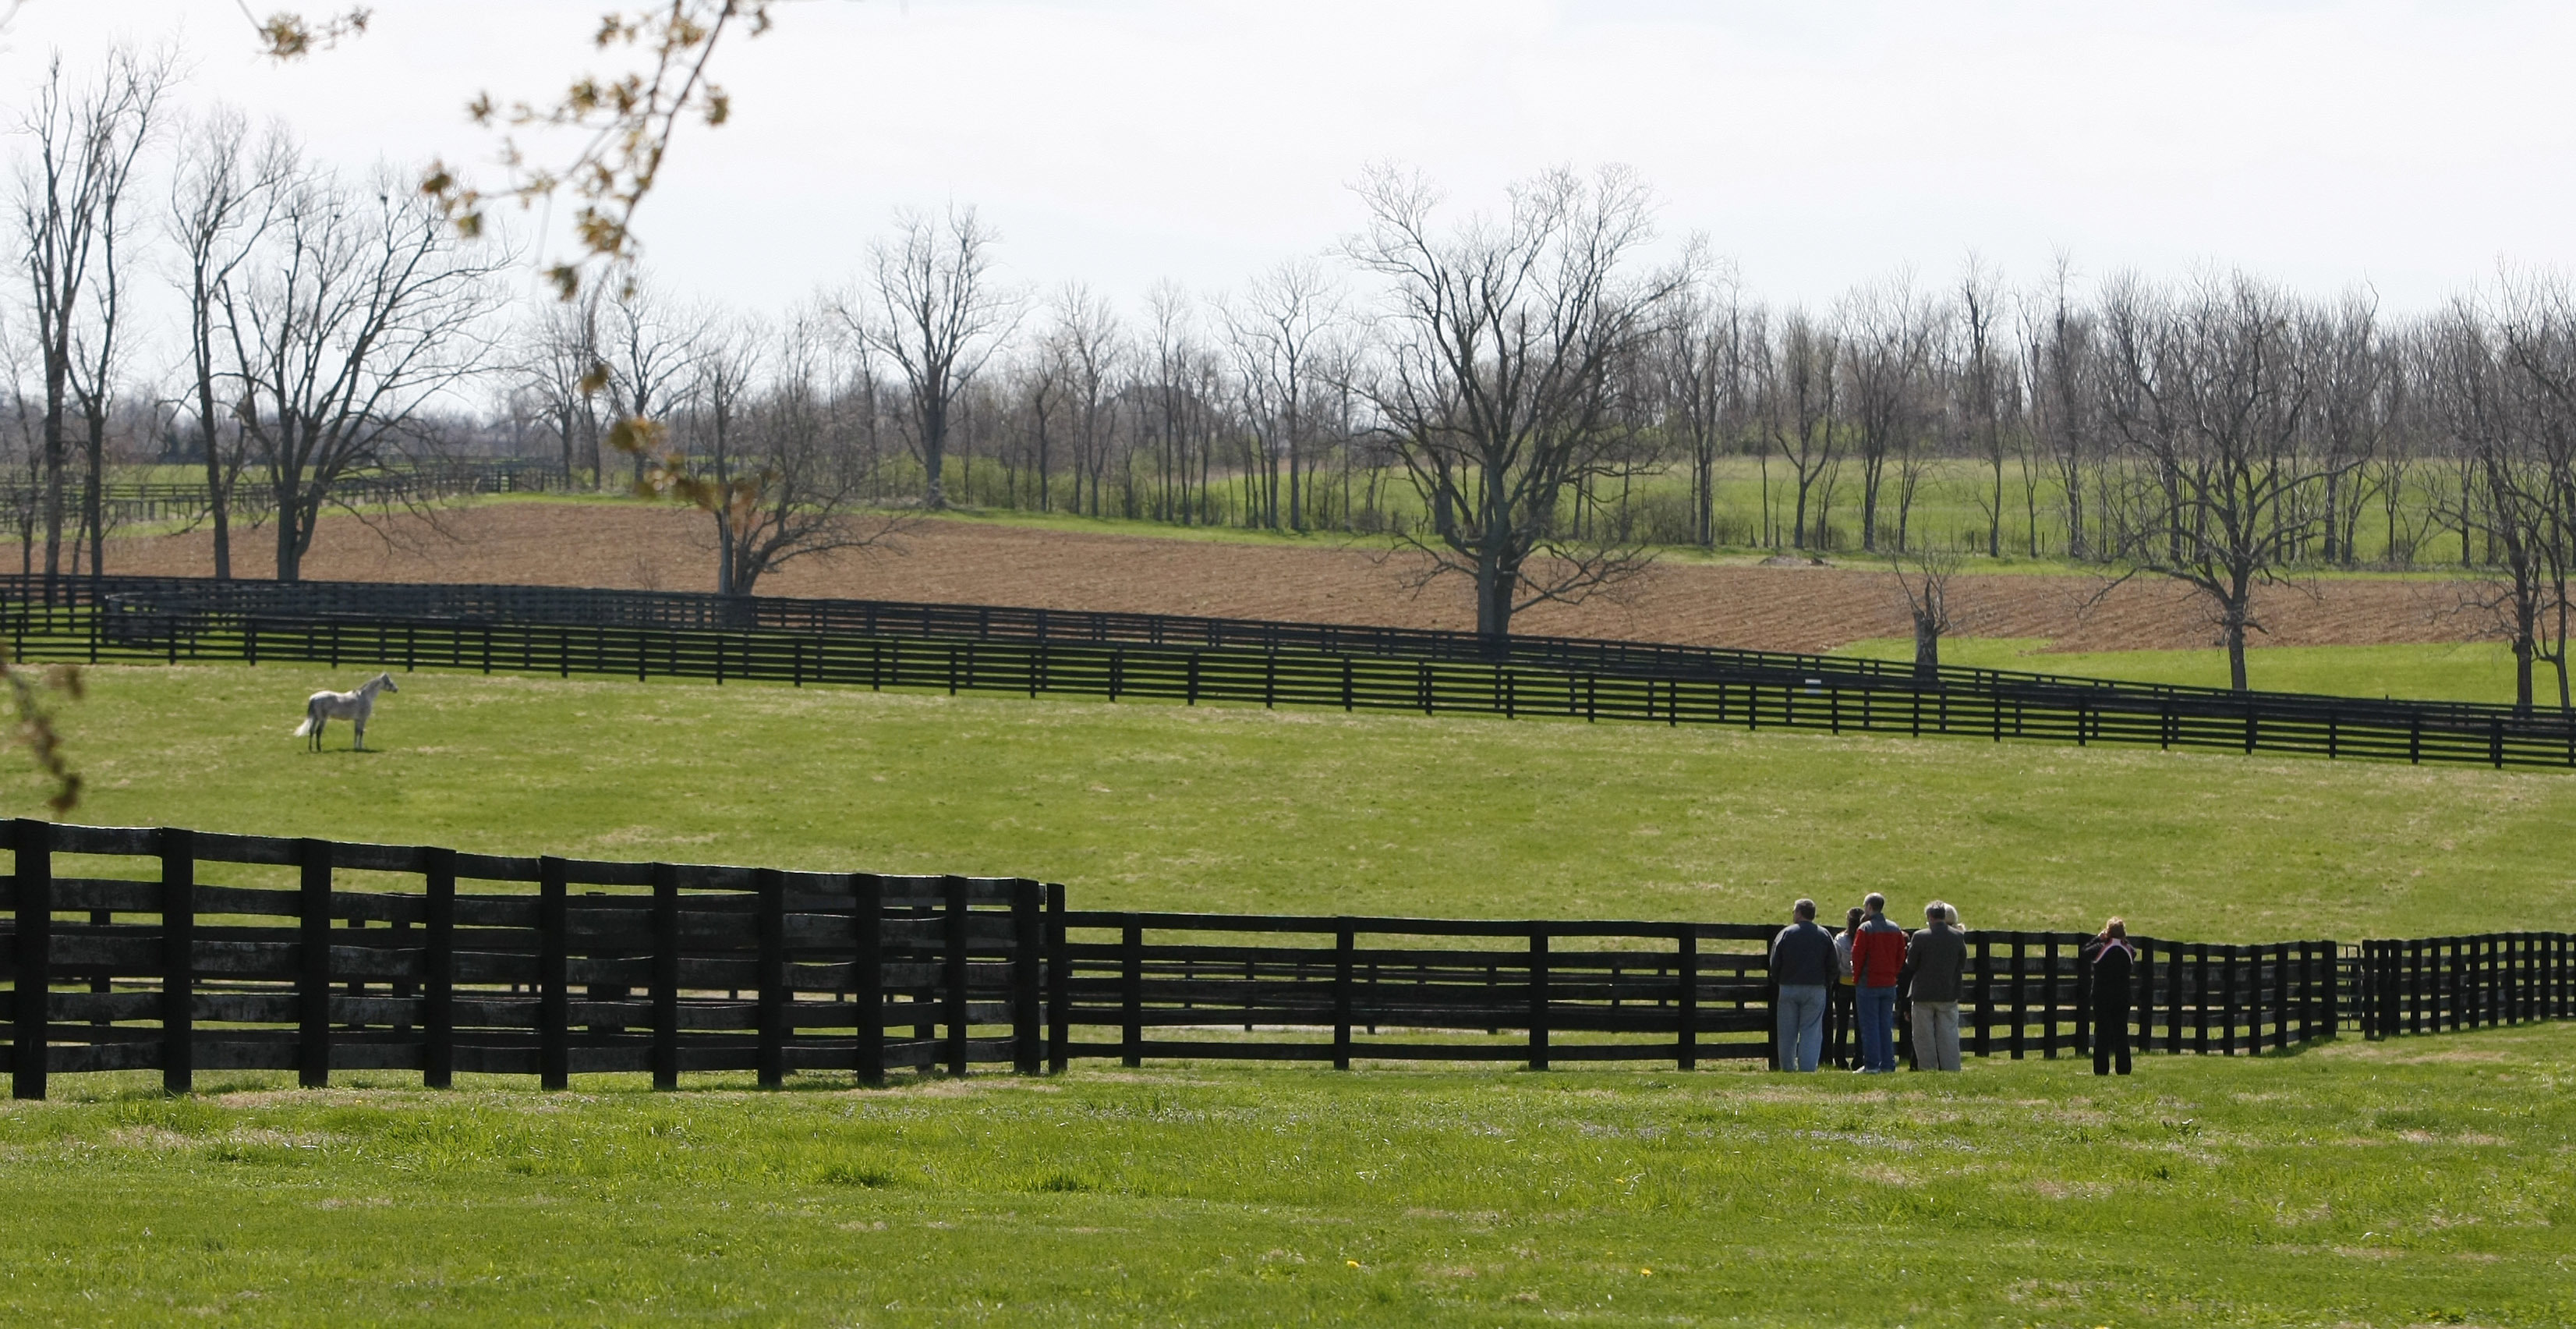 FILE - In this April 6, 2011 file photo, a tour group stands along a fence to view Exchange Rate in a paddock at Three Chimneys Farm in Midway, Ky. Some of the best-known farms in Kentuckys scenic horse country are borrowing from another of the states con